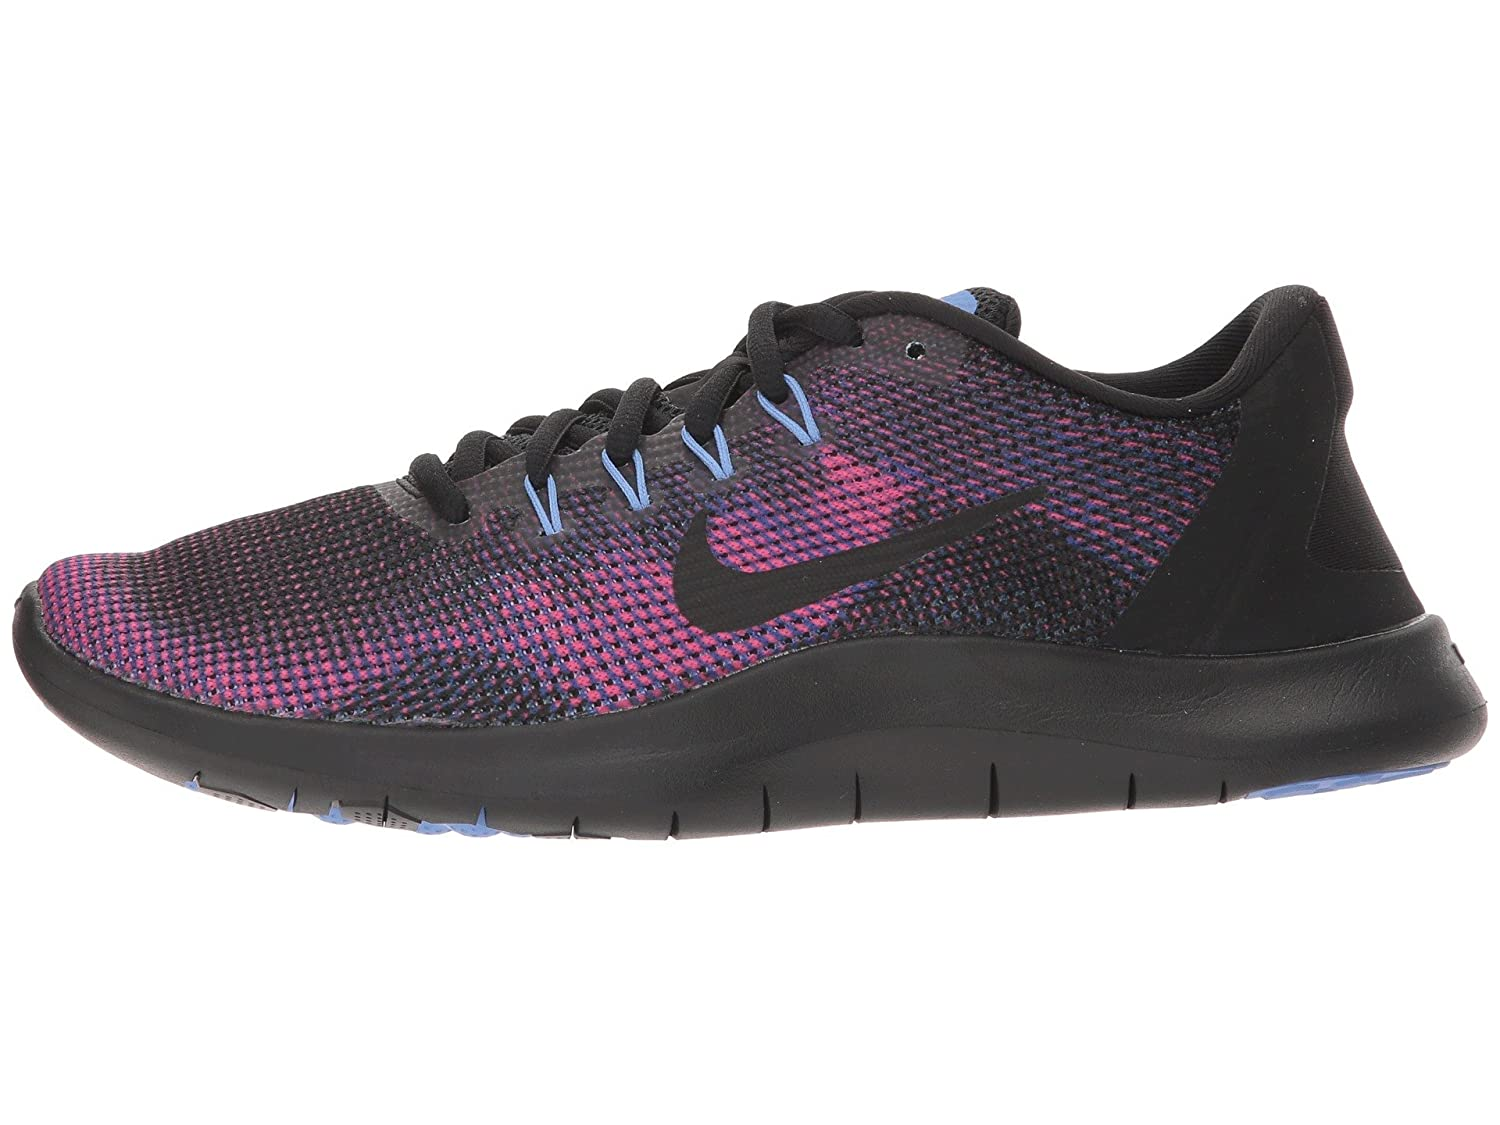 NIKE Women's Flex RN 2018 Running Shoe B078JXHT5M 6 M US|Black/Royal Pulse/Deep Royal Blue